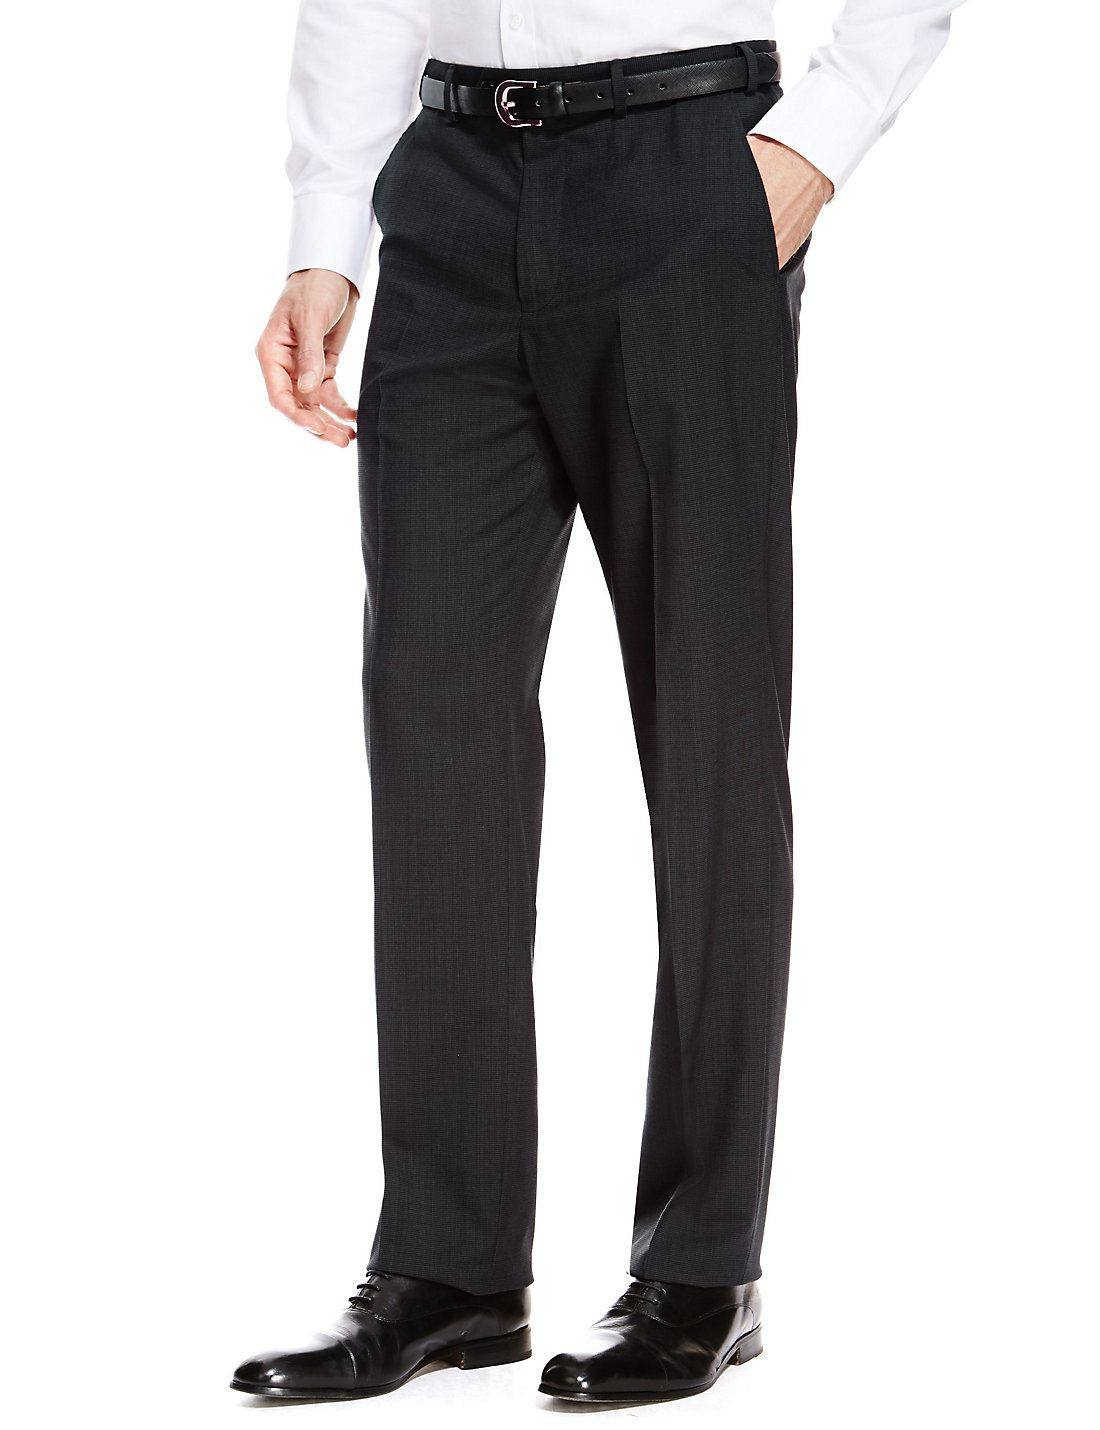 EX-M-amp-S-Marks-And-Spencer-Ultimate-Perfomance-Flat-Front-Mens-Trousers-With-Wool thumbnail 5